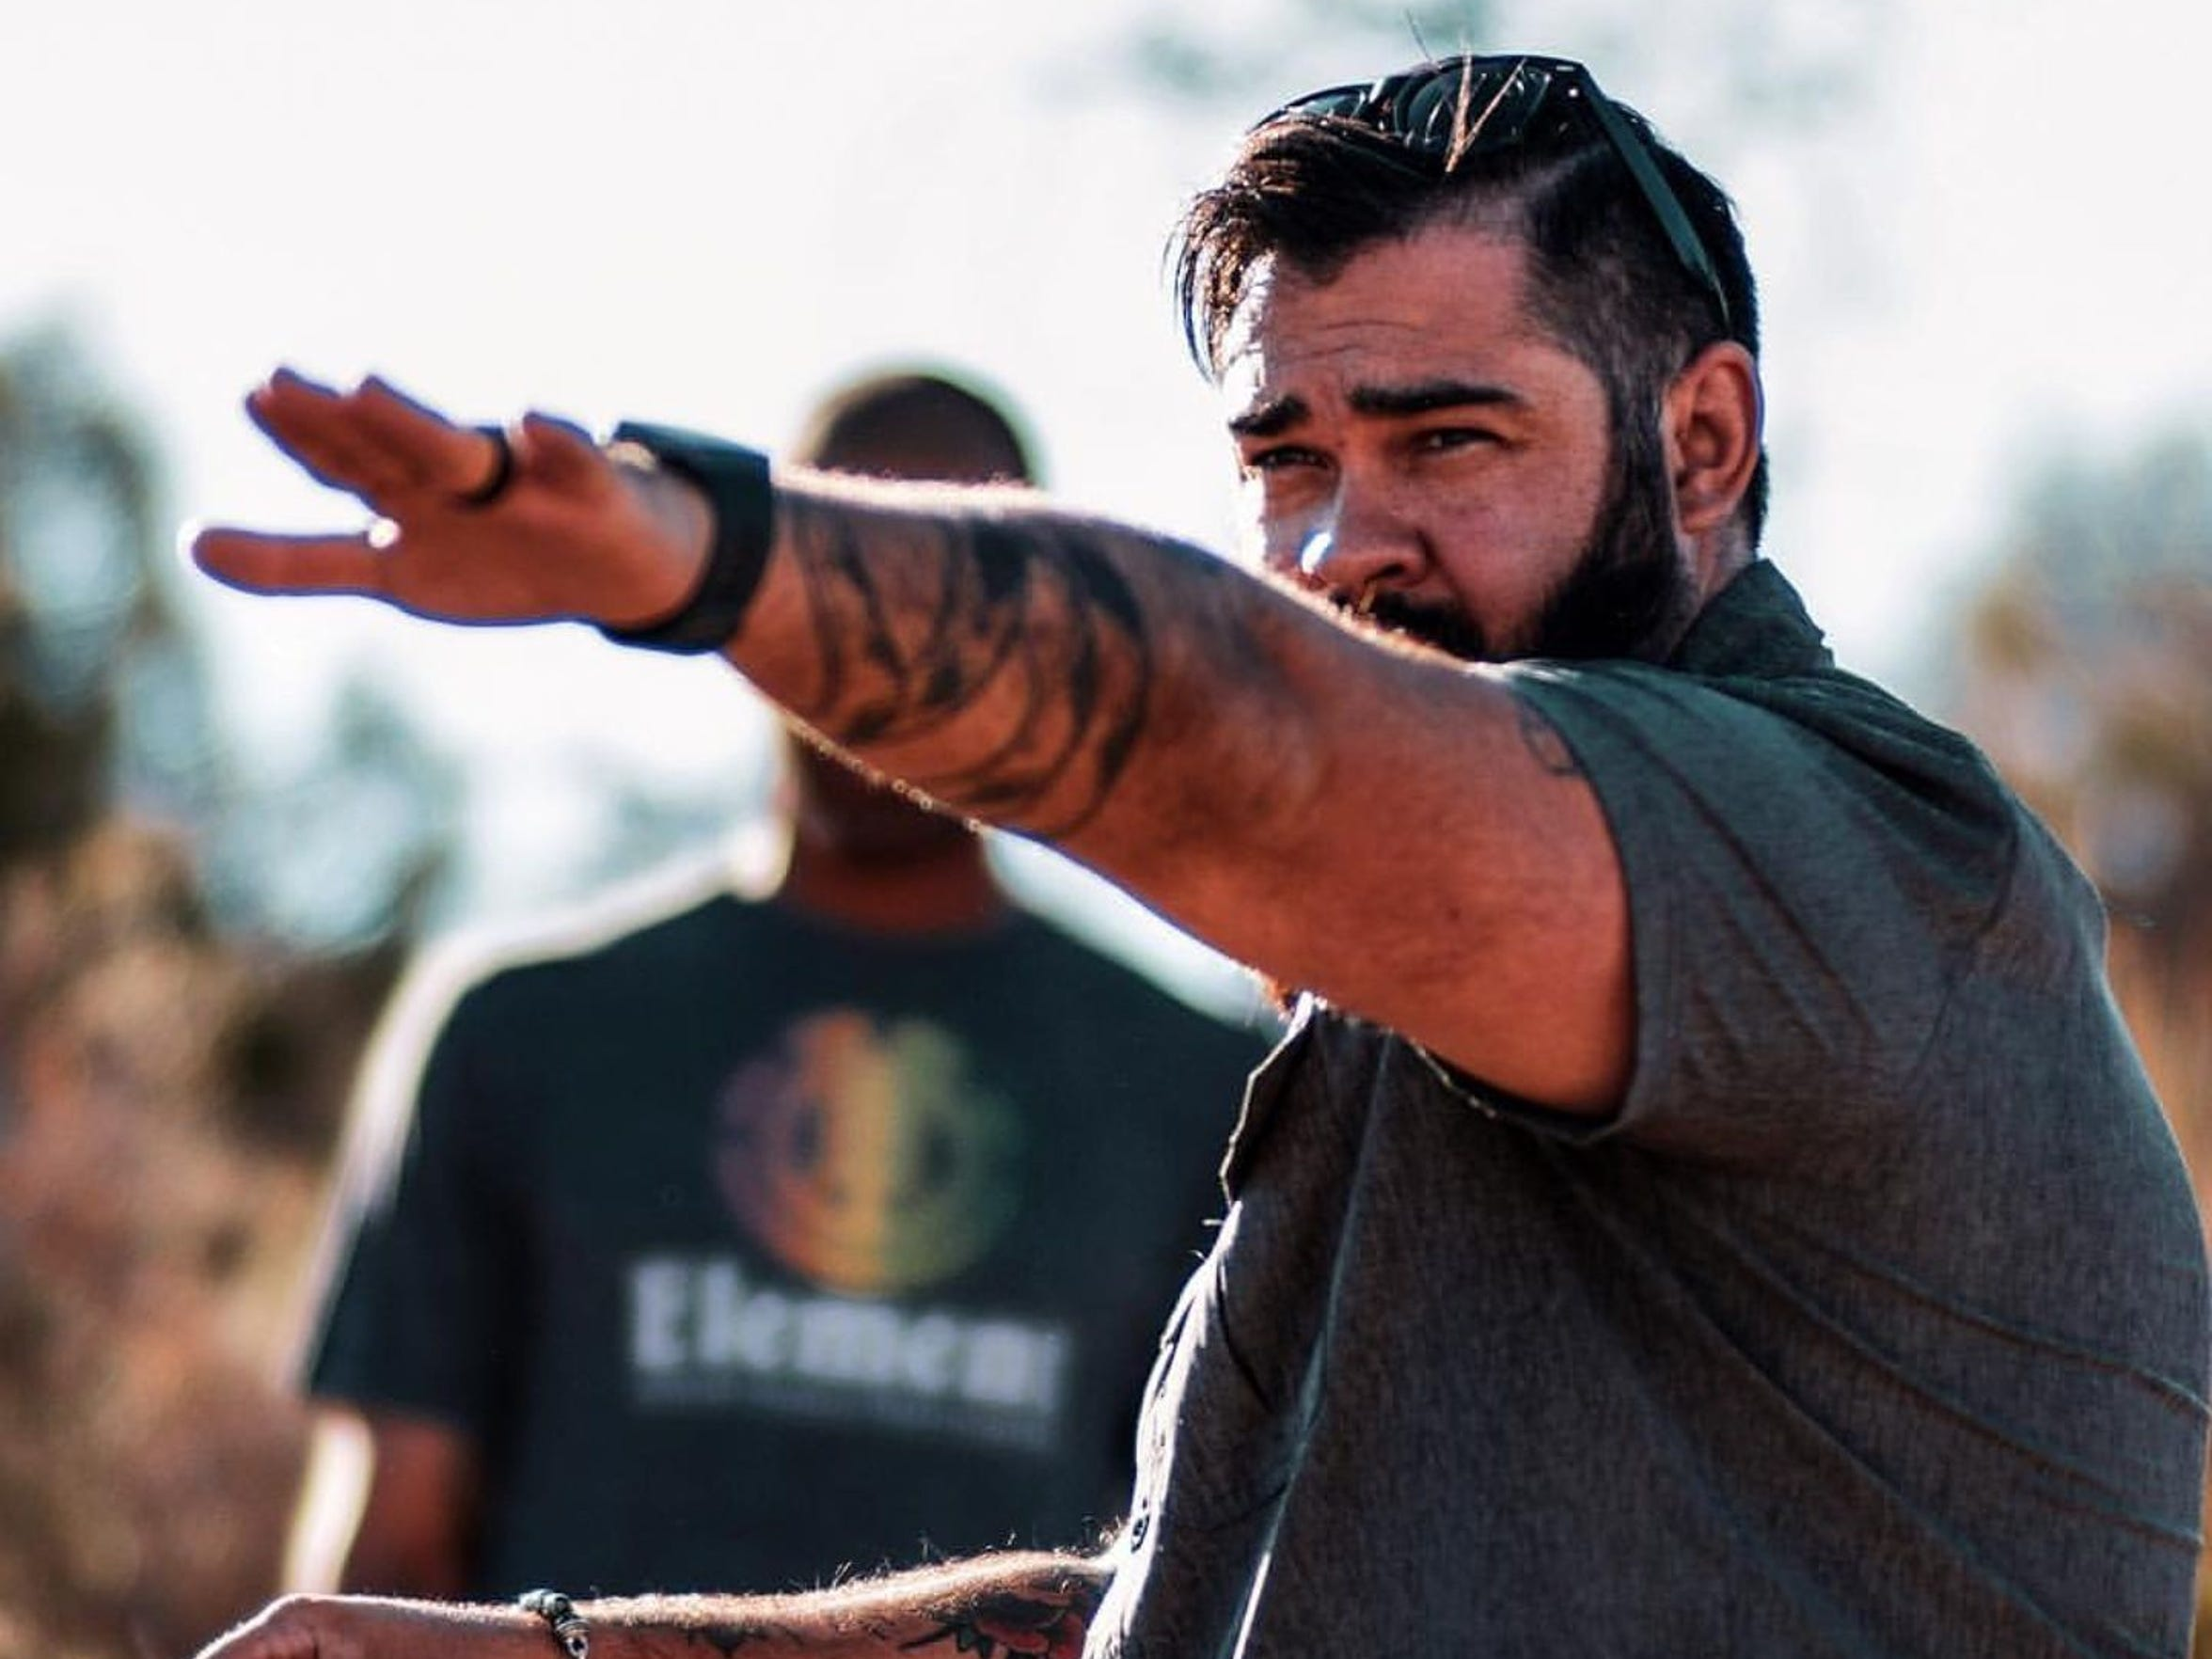 Local filmmaker Brent Garcia is organizing a film festival later this year in Farmington that he hopes will help educate out-of-town industry figures about what the Four Corners has to offer them.